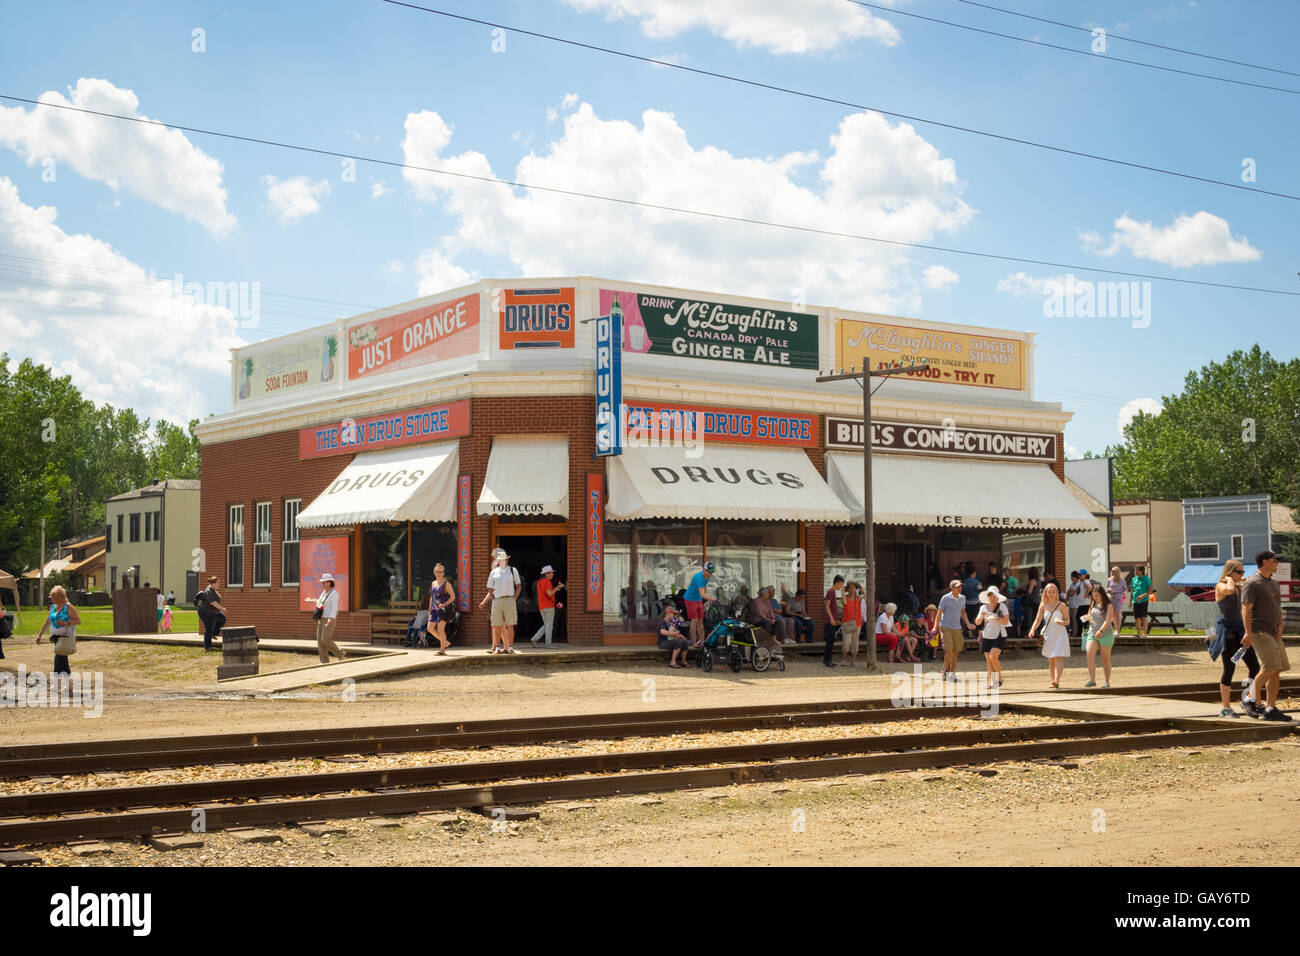 The Sun Drugstore and Bill's Confectionery on 1920 Street at Fort Edmonton Park in Edmonton, Alberta, Canada. - Stock Image